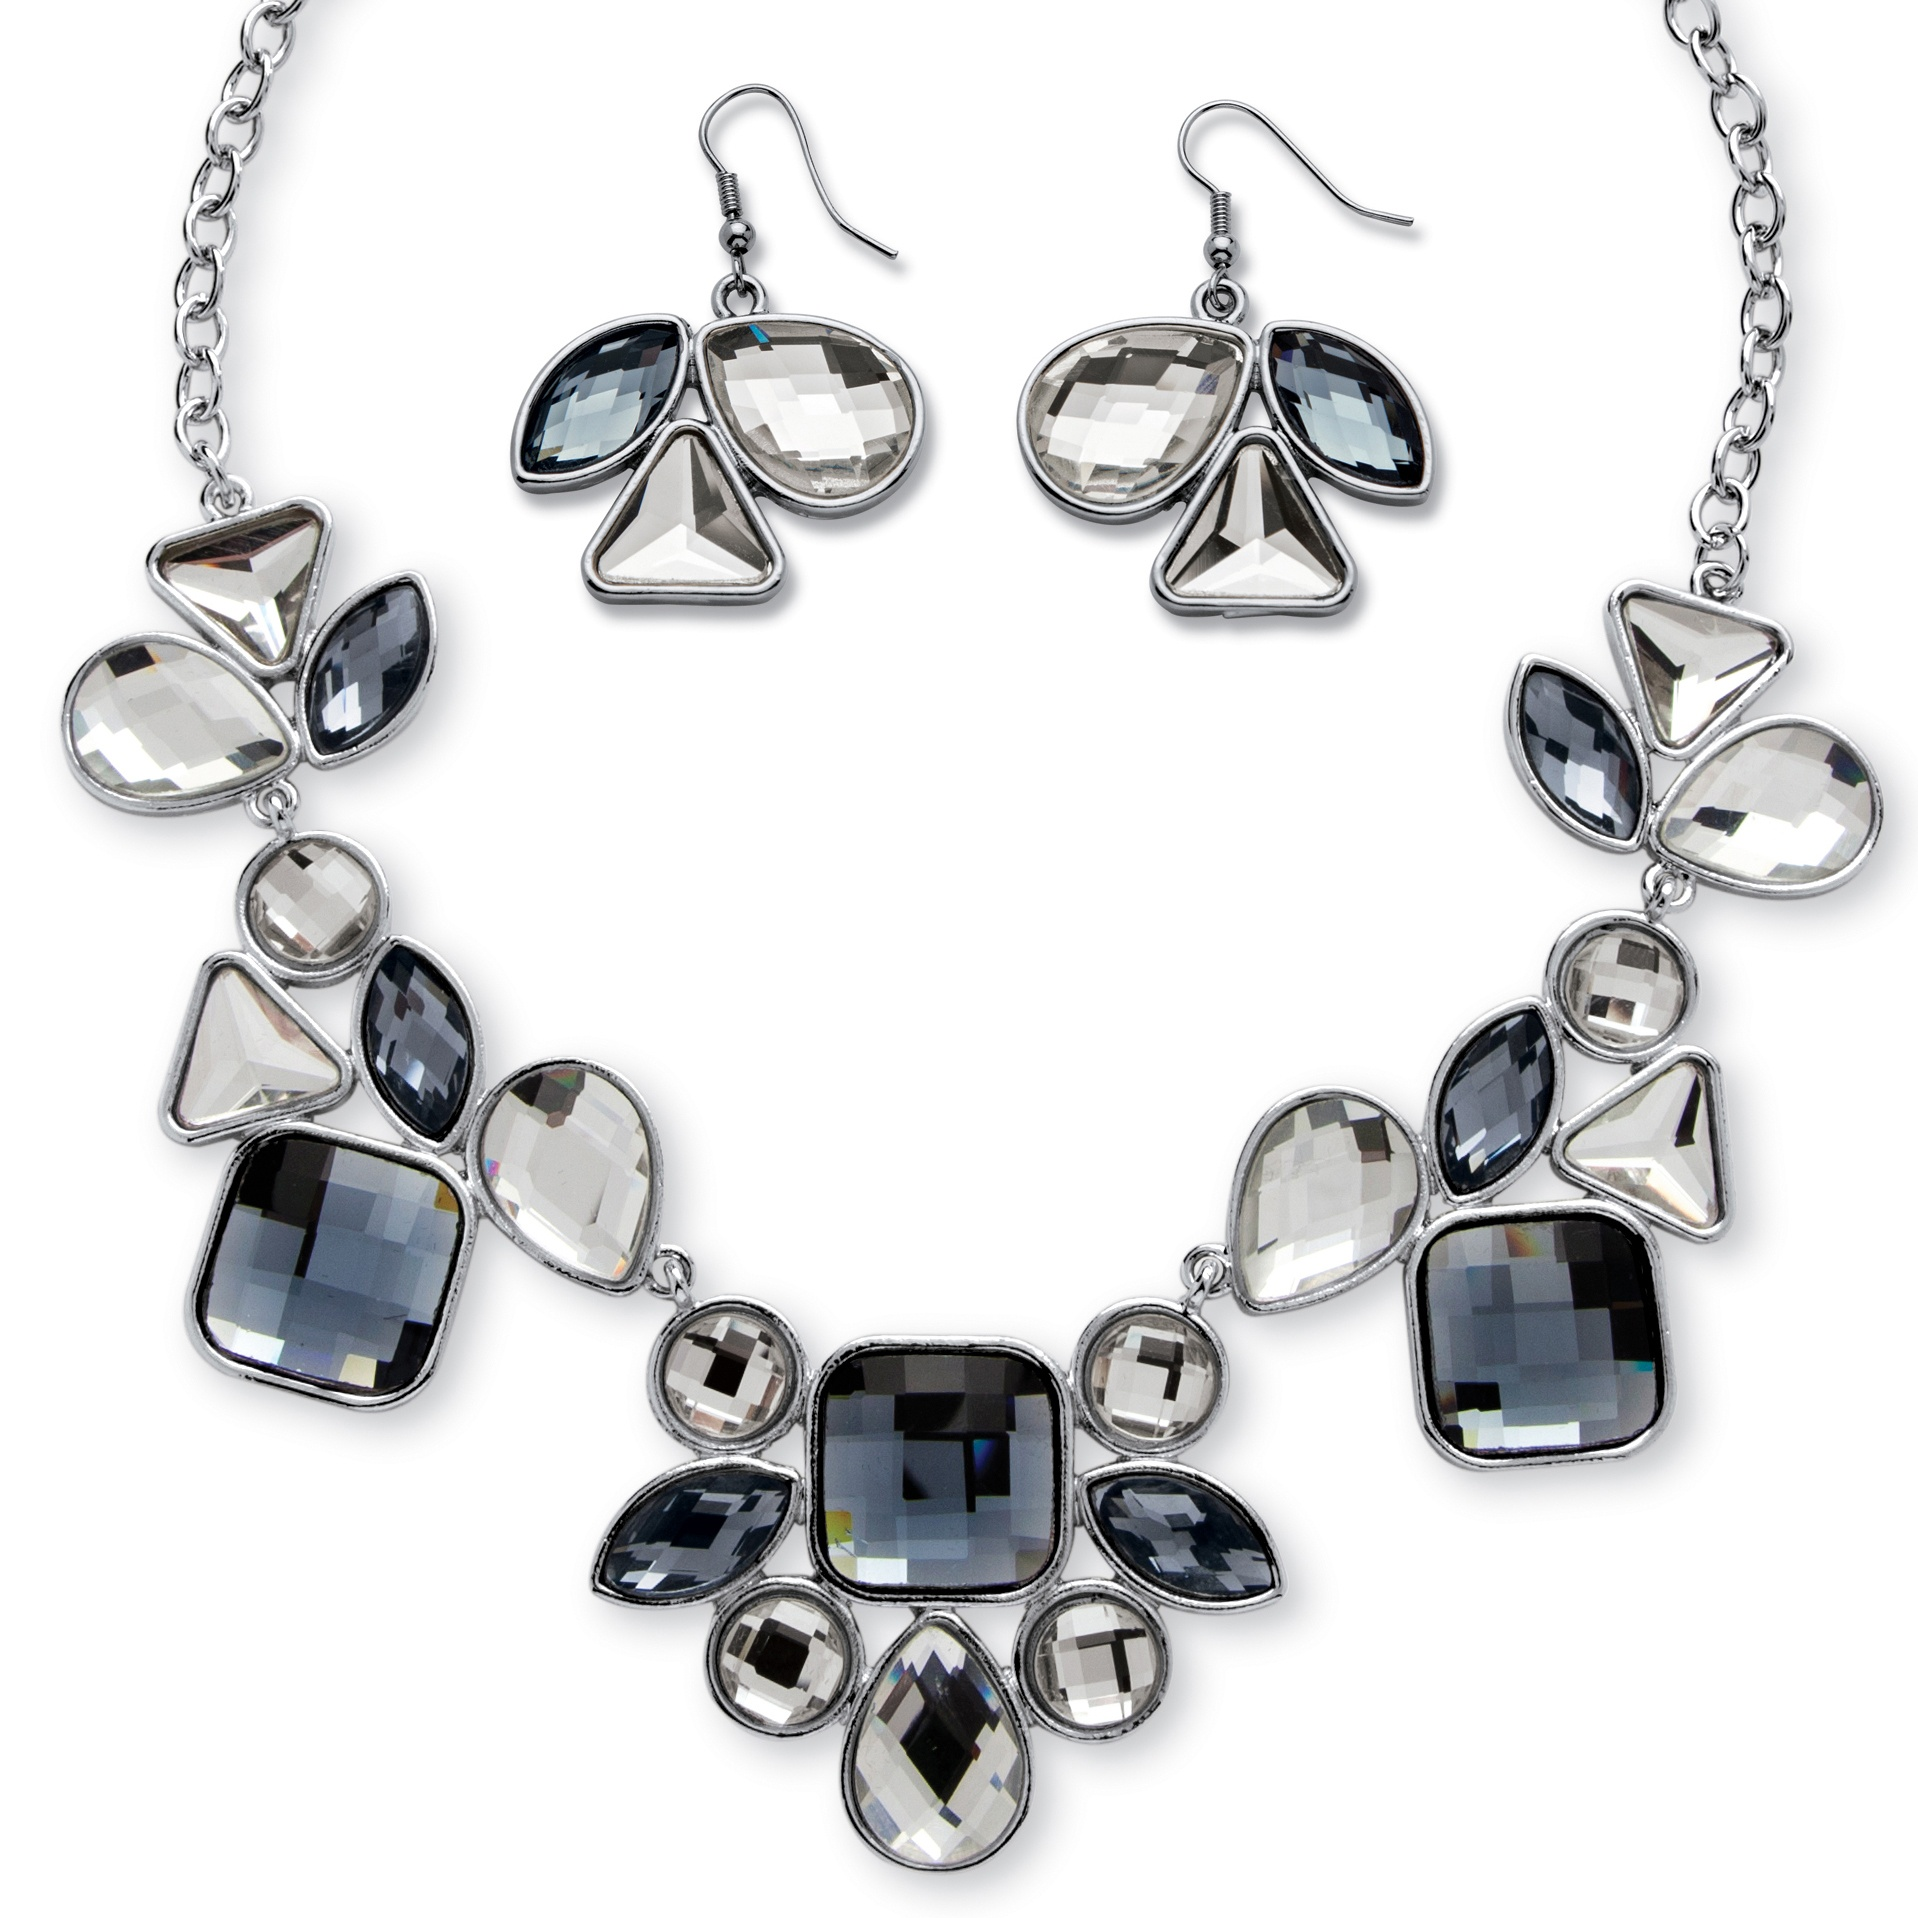 Checkerboard-Cut Geometric White and Grey Crystal Necklace and Earrings Set in Rhodium-Plated Finish